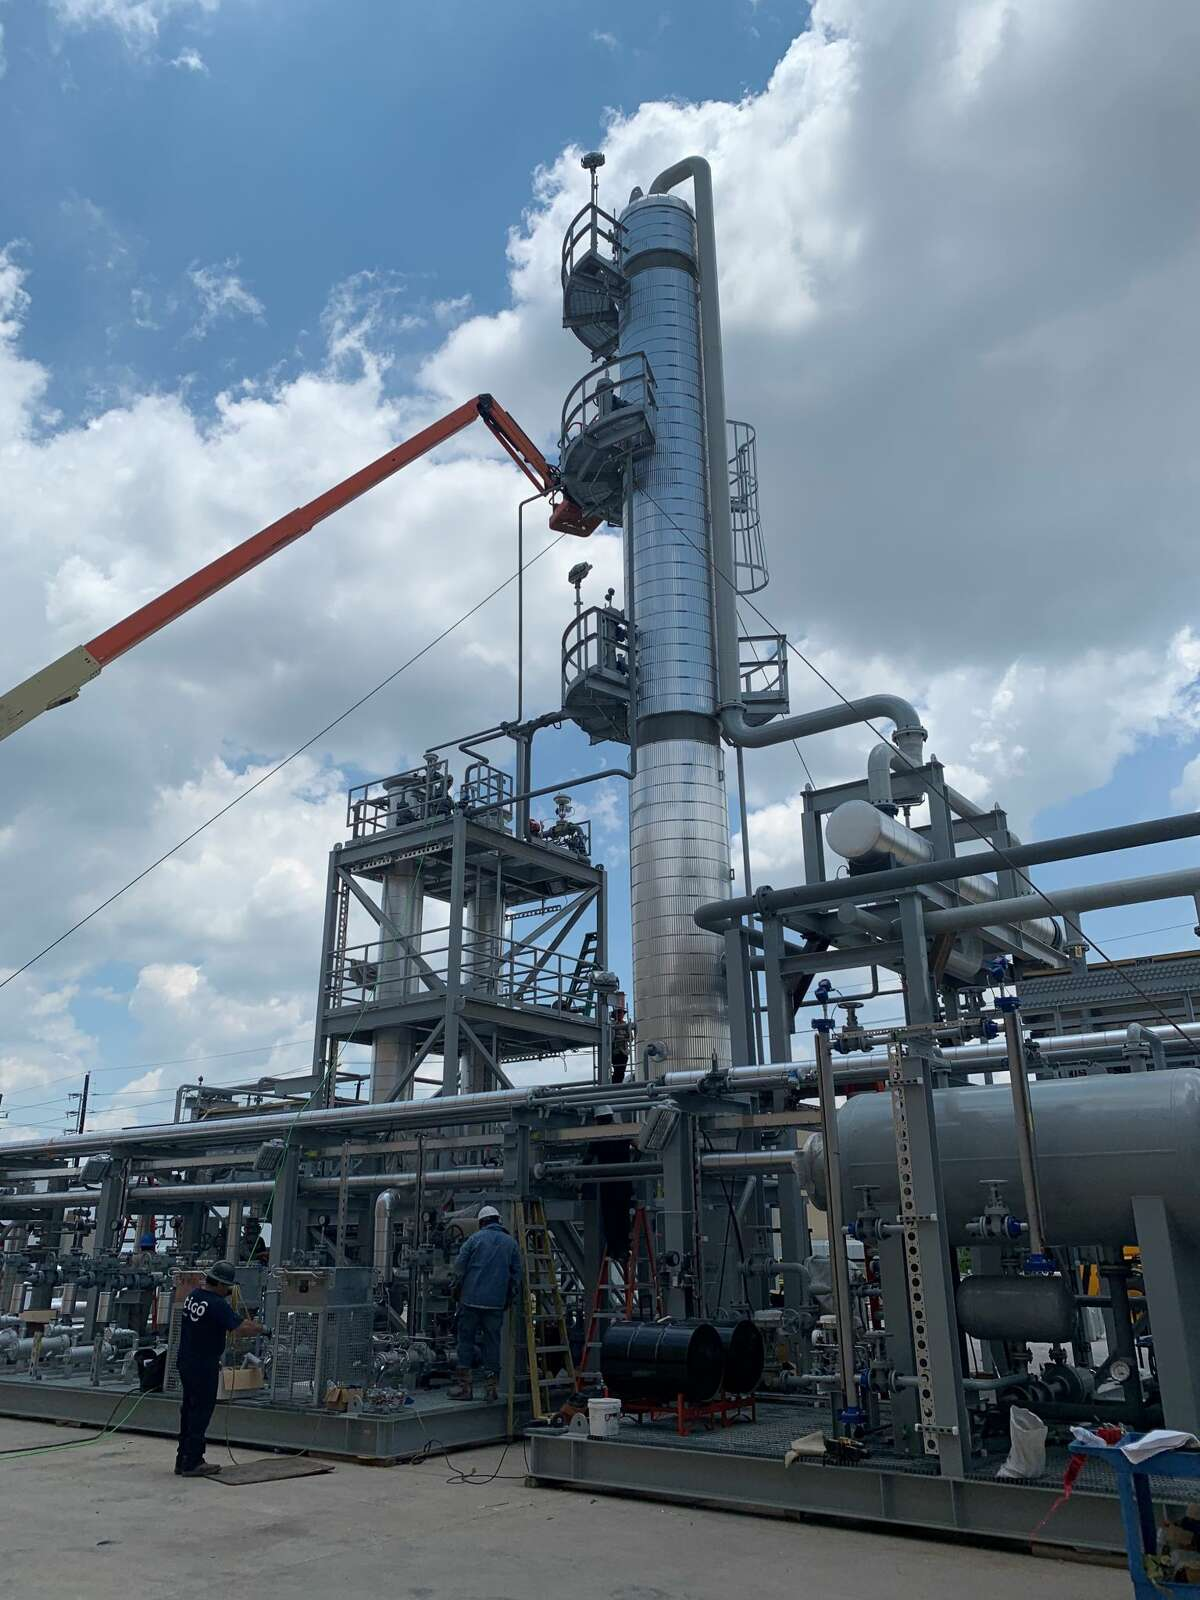 MMEX Resources selected VFuels to oversee the engineering, design and construction of its initial distillation unit, which will feature a 10,000 barrel a day crude distillation tower with a stack that is a little broader and higher than this 5,000 barrel per day tower seen at VFuels.